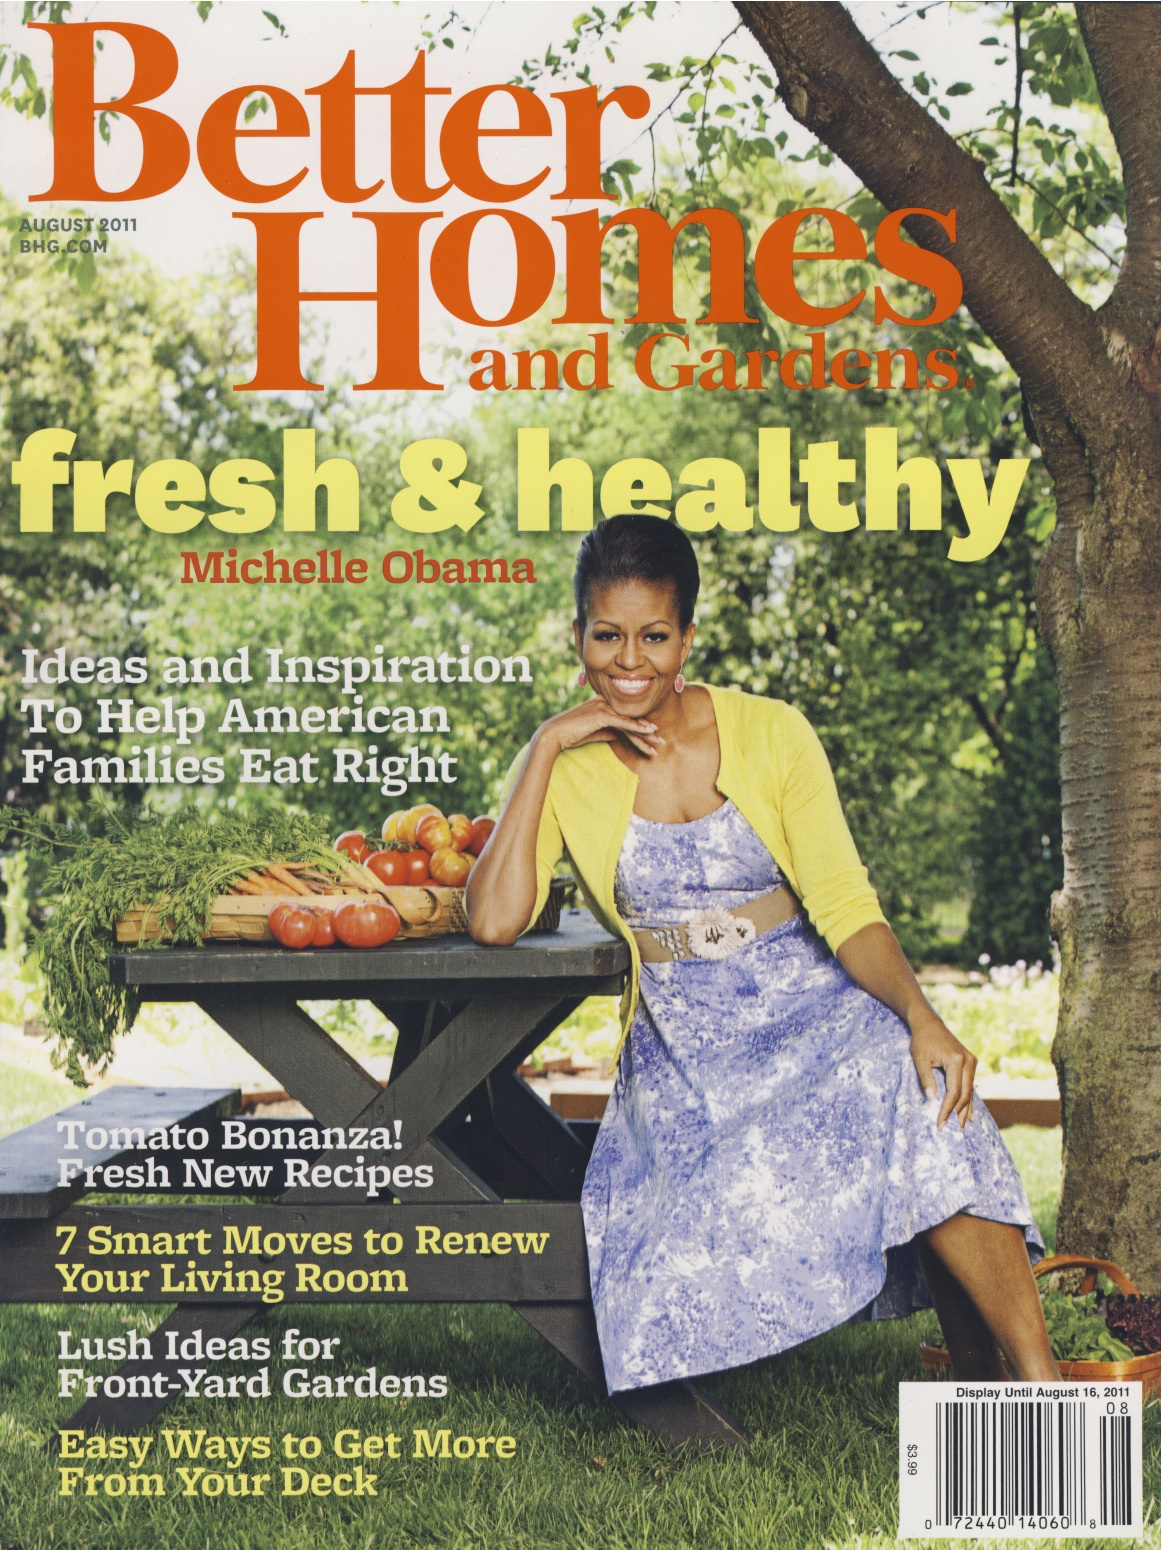 Featured in Better Homes & Gardens August 2011